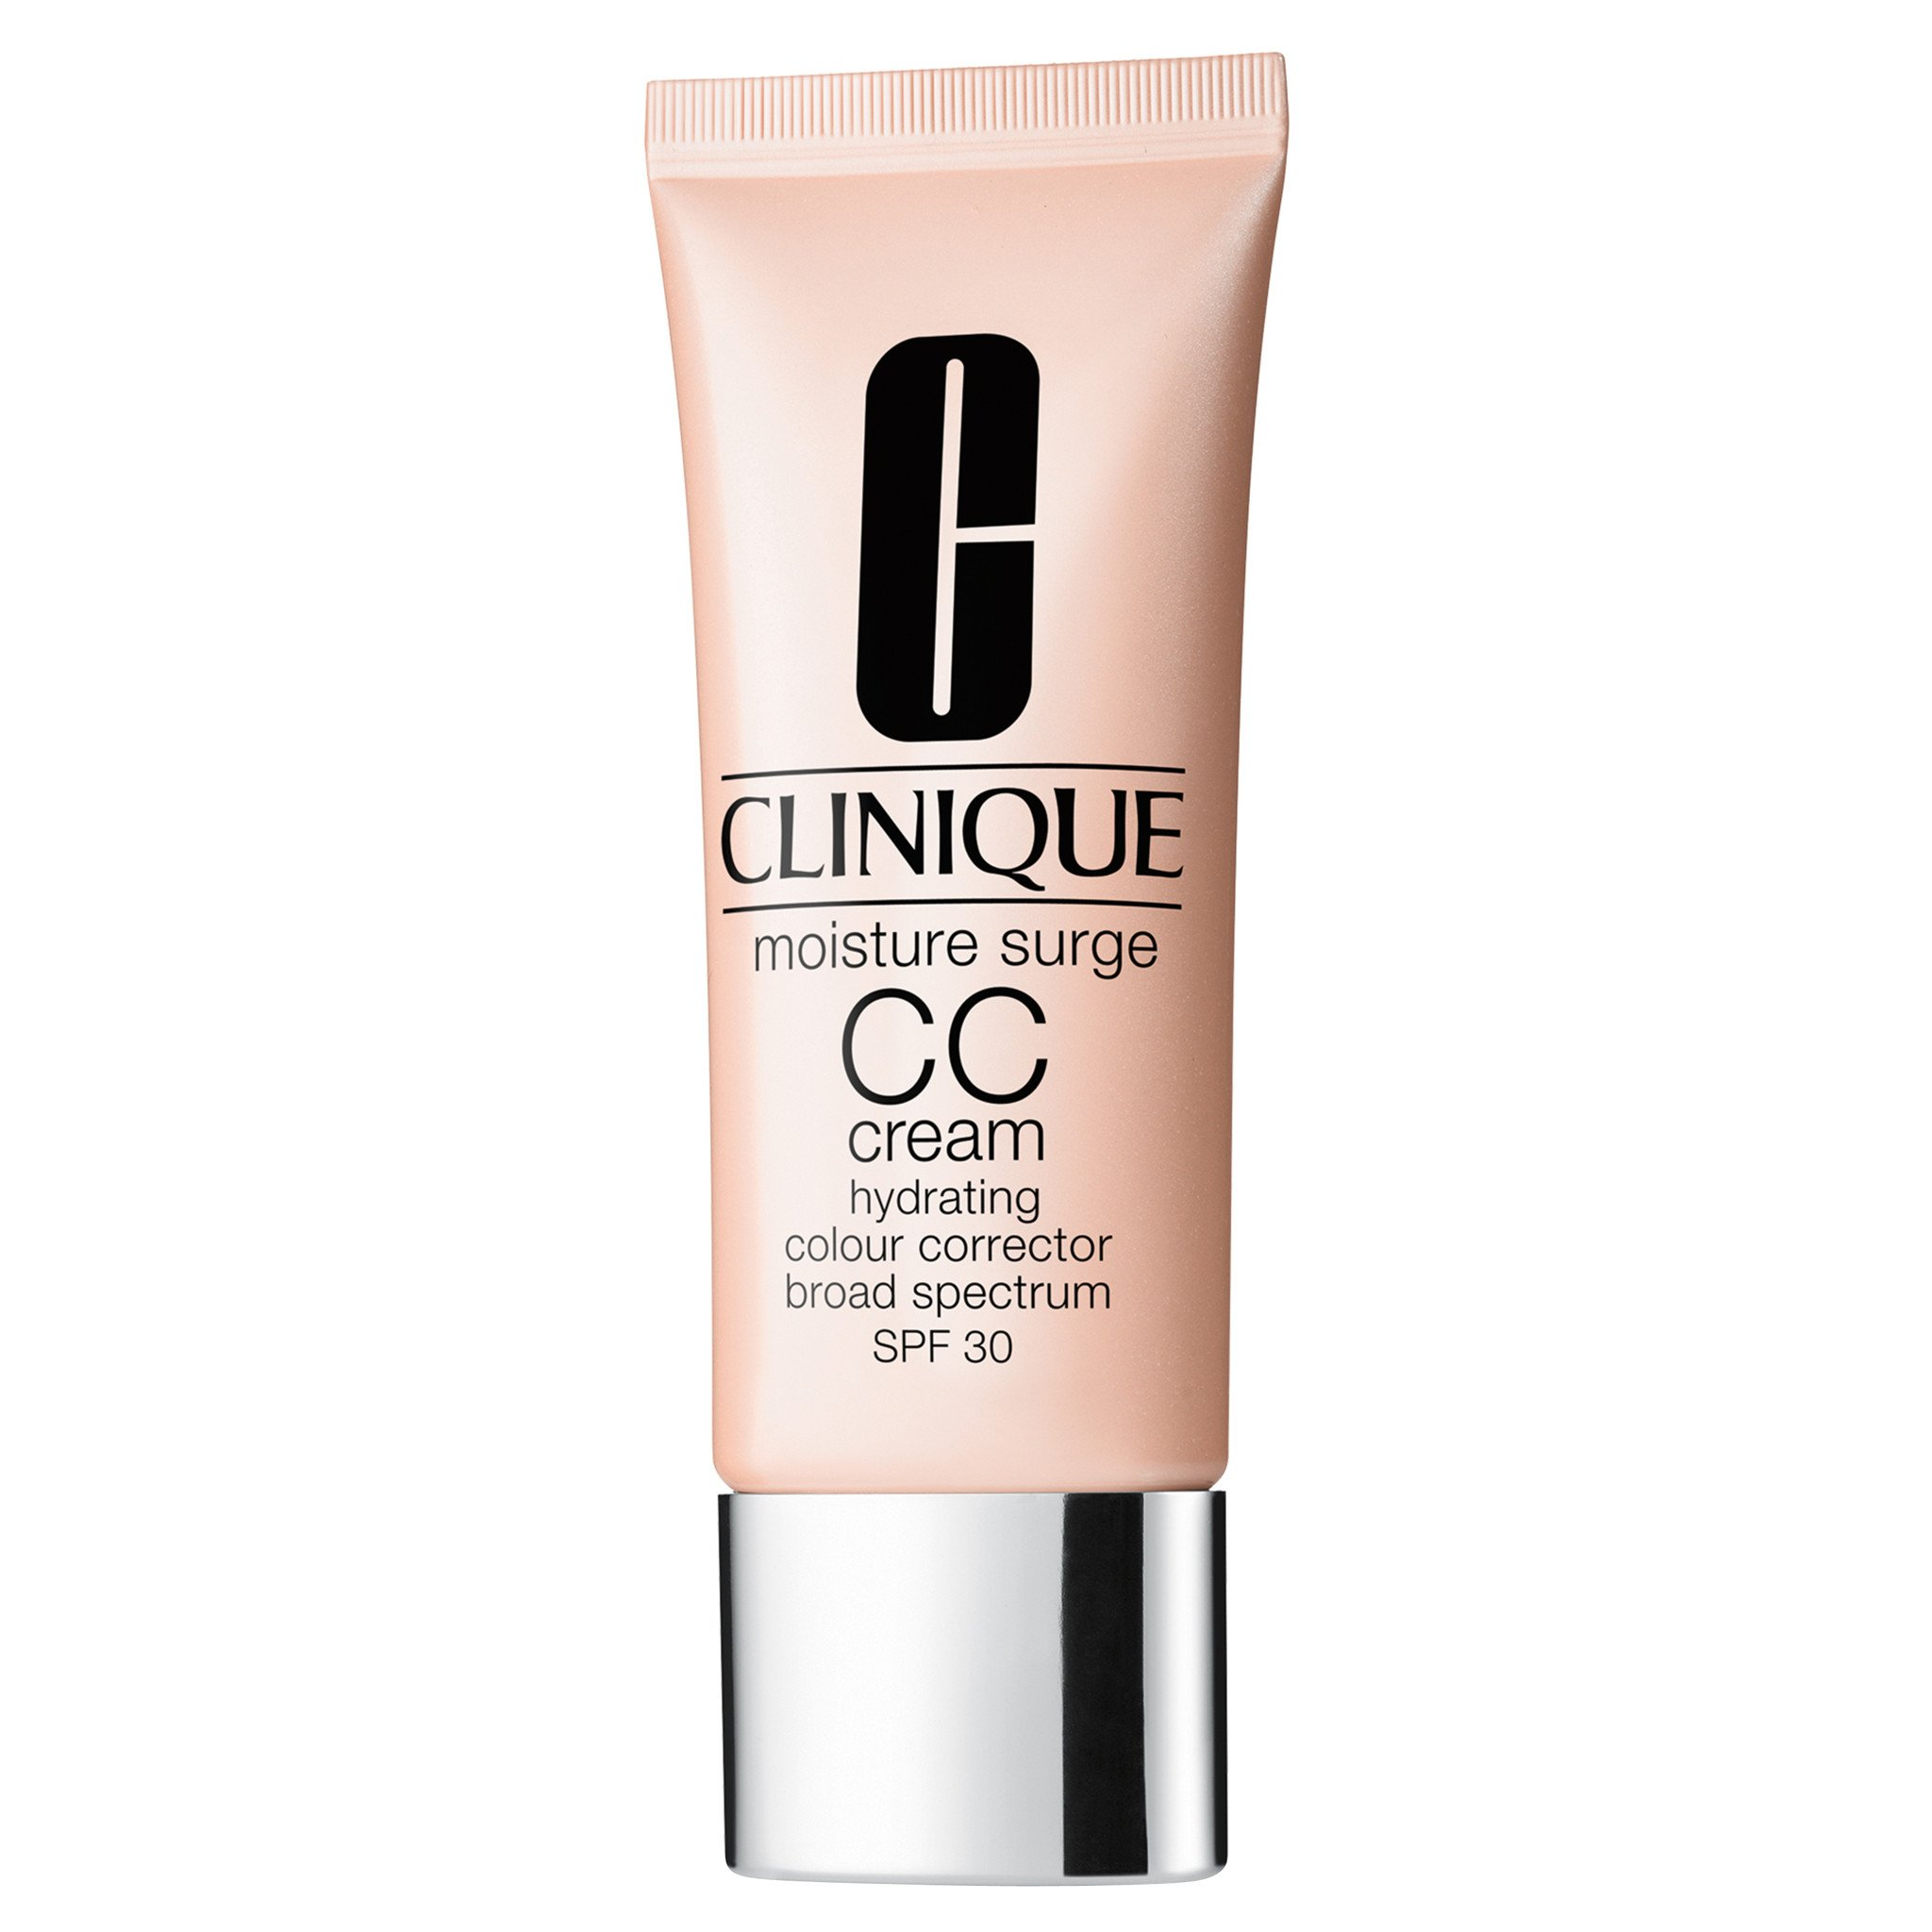 Clinique Moisture Surge CC Cream SPF 30 Hydrating Color Corrector Sunscreen, Medium Deep, 1.4 Ounce